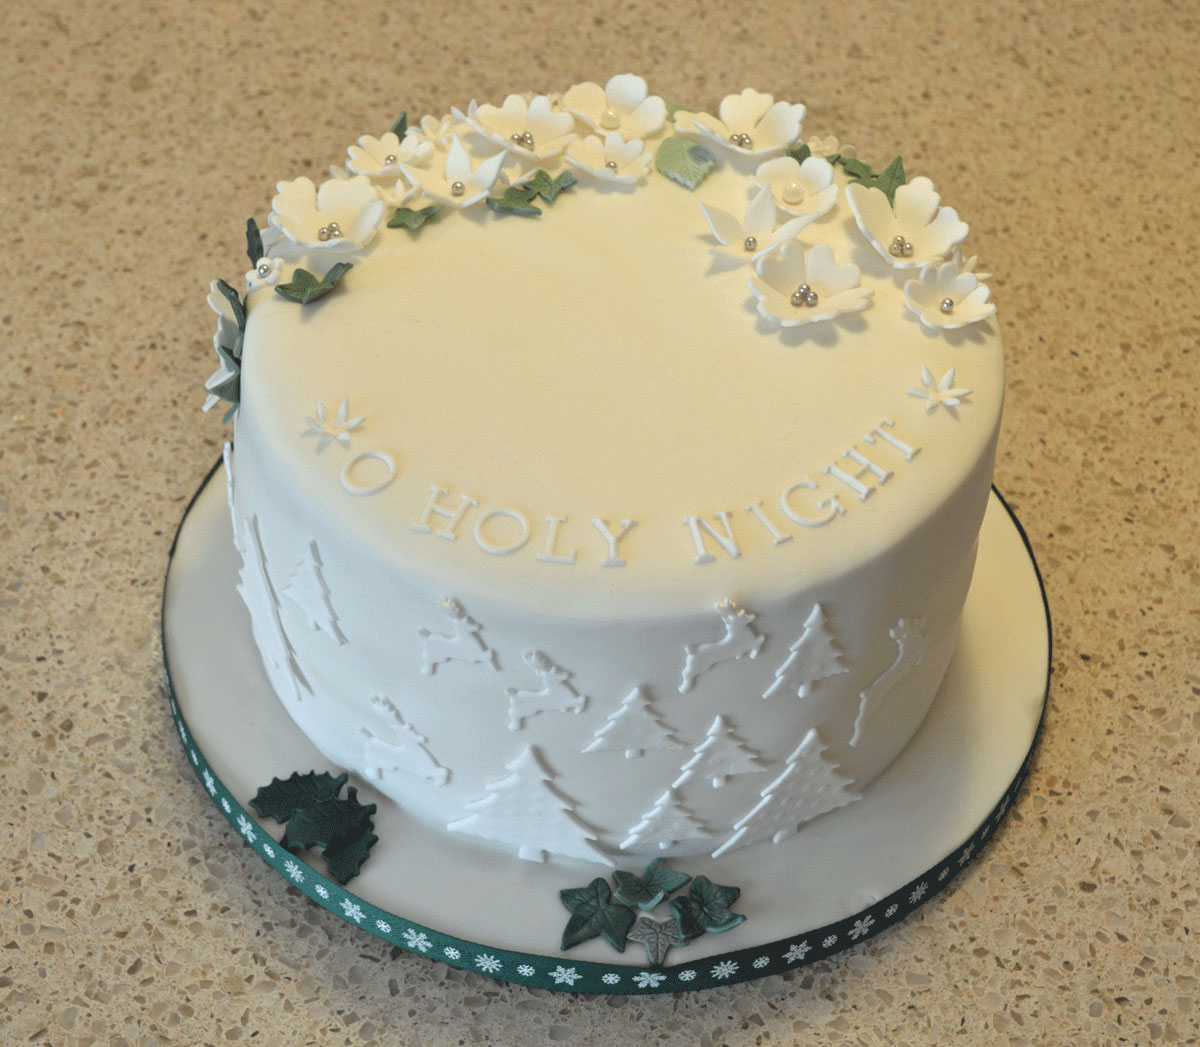 CAKE LIFE | O HOLY NIGHT, THE STARS ARE BRIGHTLY SHINING - Judith ...